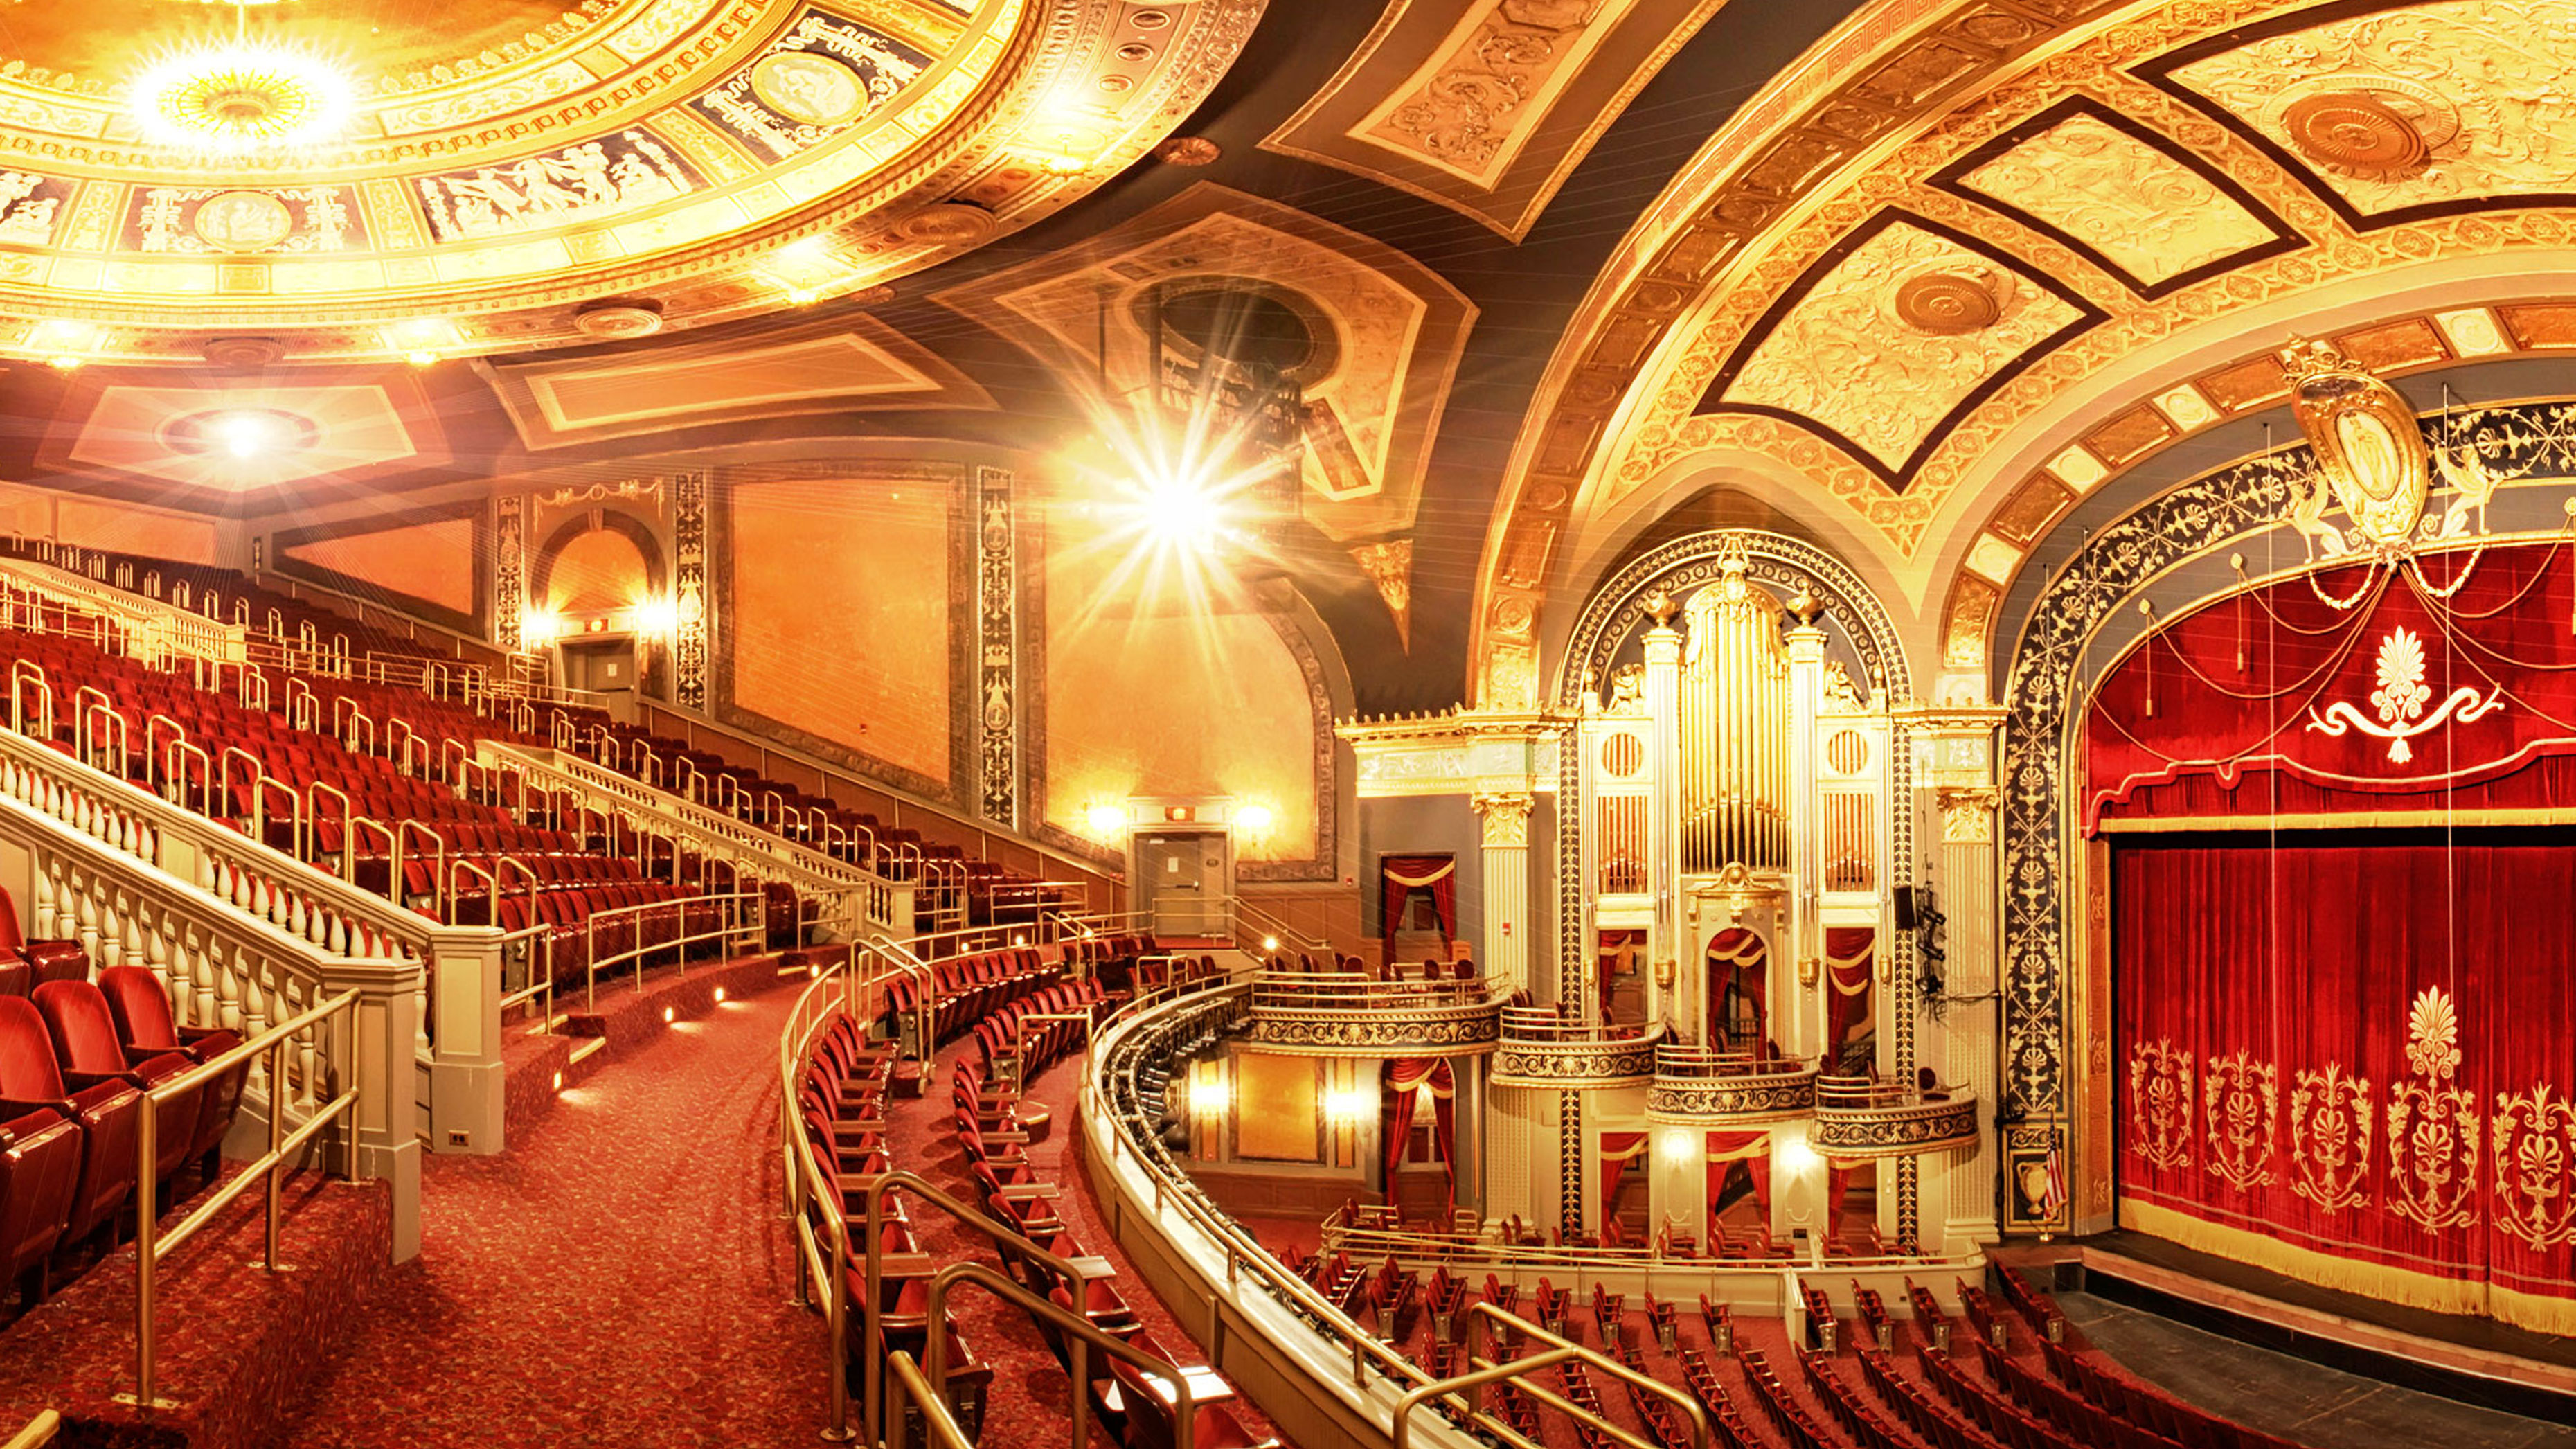 View of the stunning architecture featured inside The Palace Theater in Waterbury CT